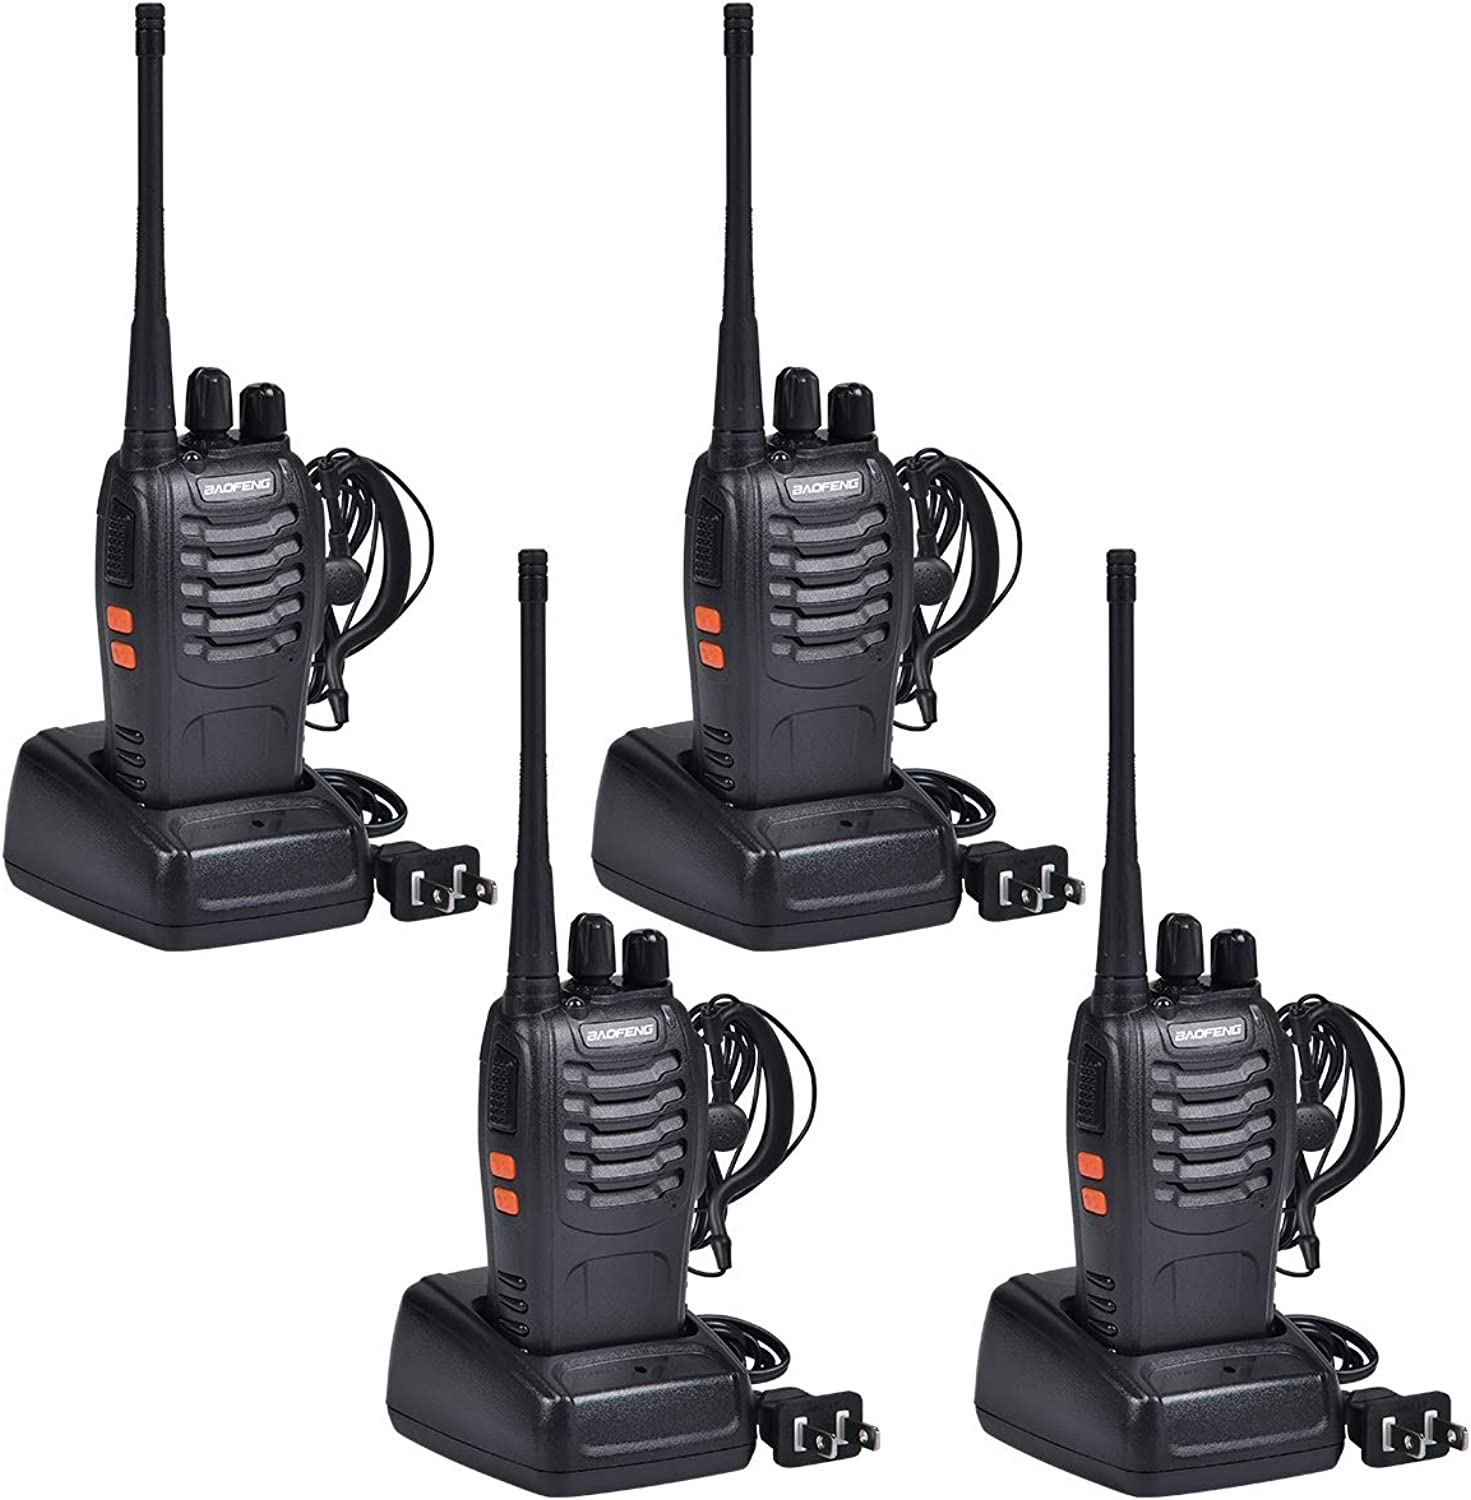 Baofeng Walkie Talkies Rechargable Long Range Walkie Talkie for Adults Two Way Radio Set 16 Channel 5 km Range 400470MHz Handheld Walky Talky Transceiver with Batteries Earpiece (Pack of 4)